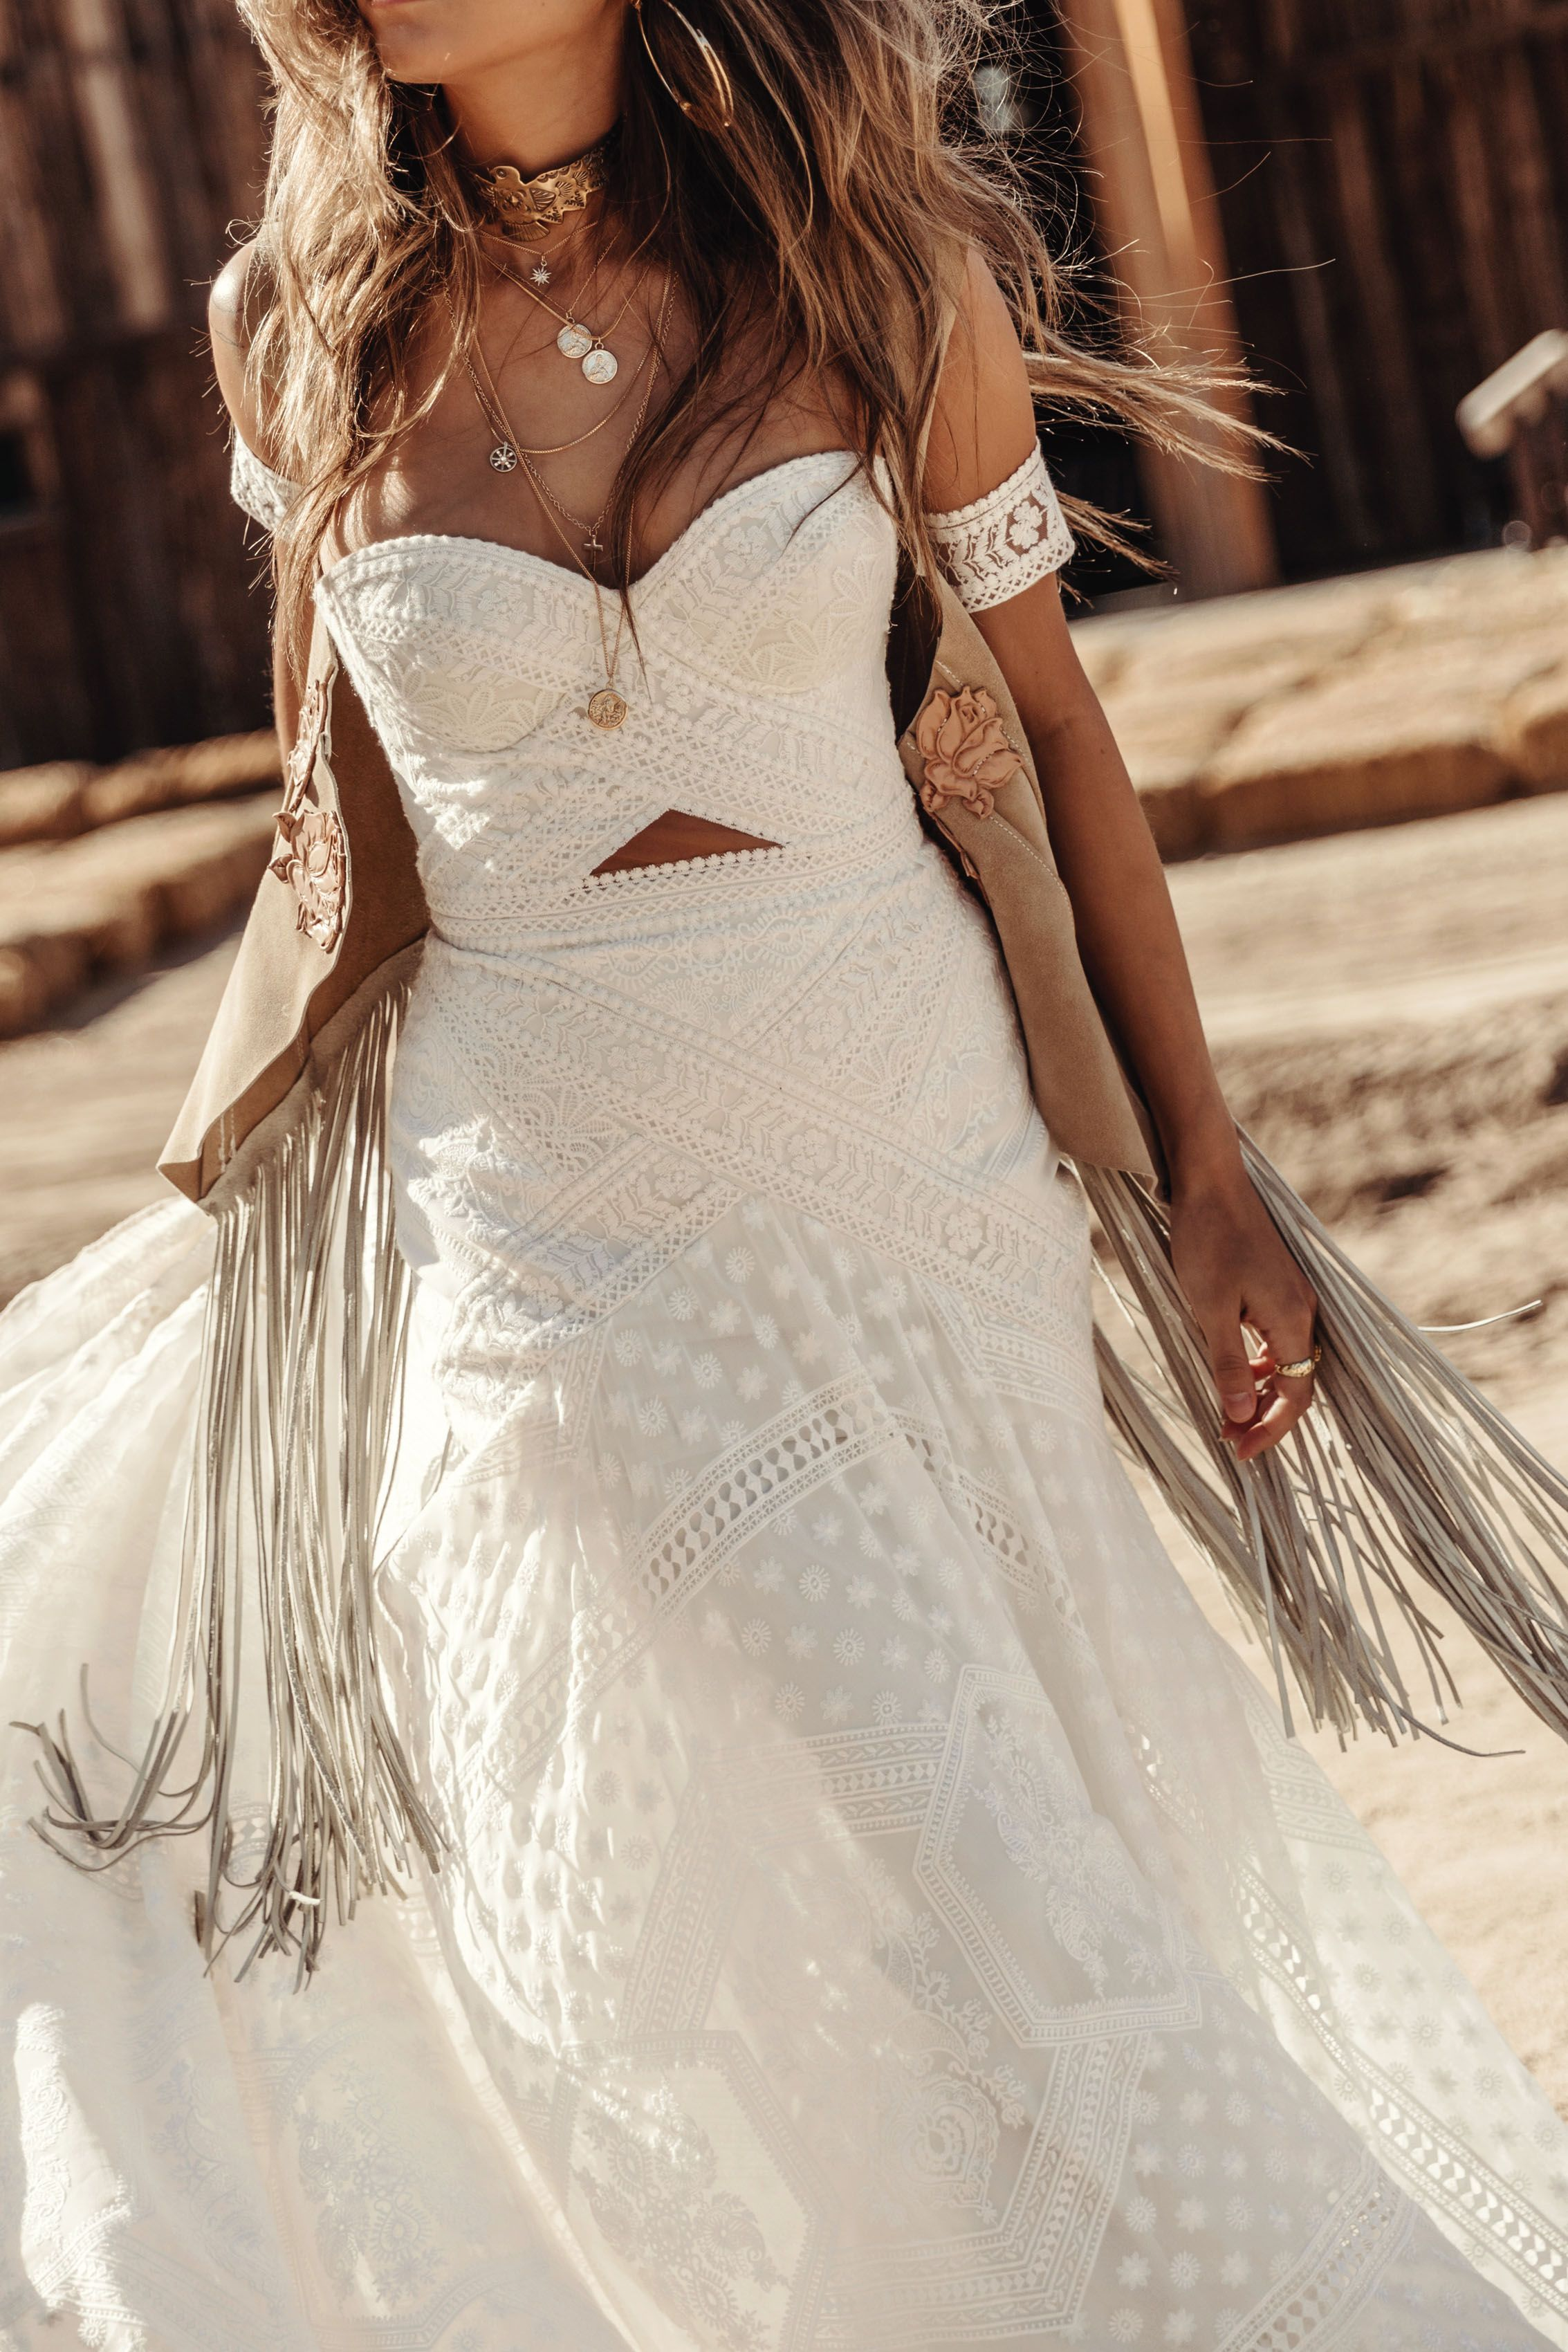 Knoxville Gown By Rue De Seine Moonrise Canyon Collection 2019 Bohemian Wedding Dress Lace Bridal Gown Bohemian Making A Wedding Dress